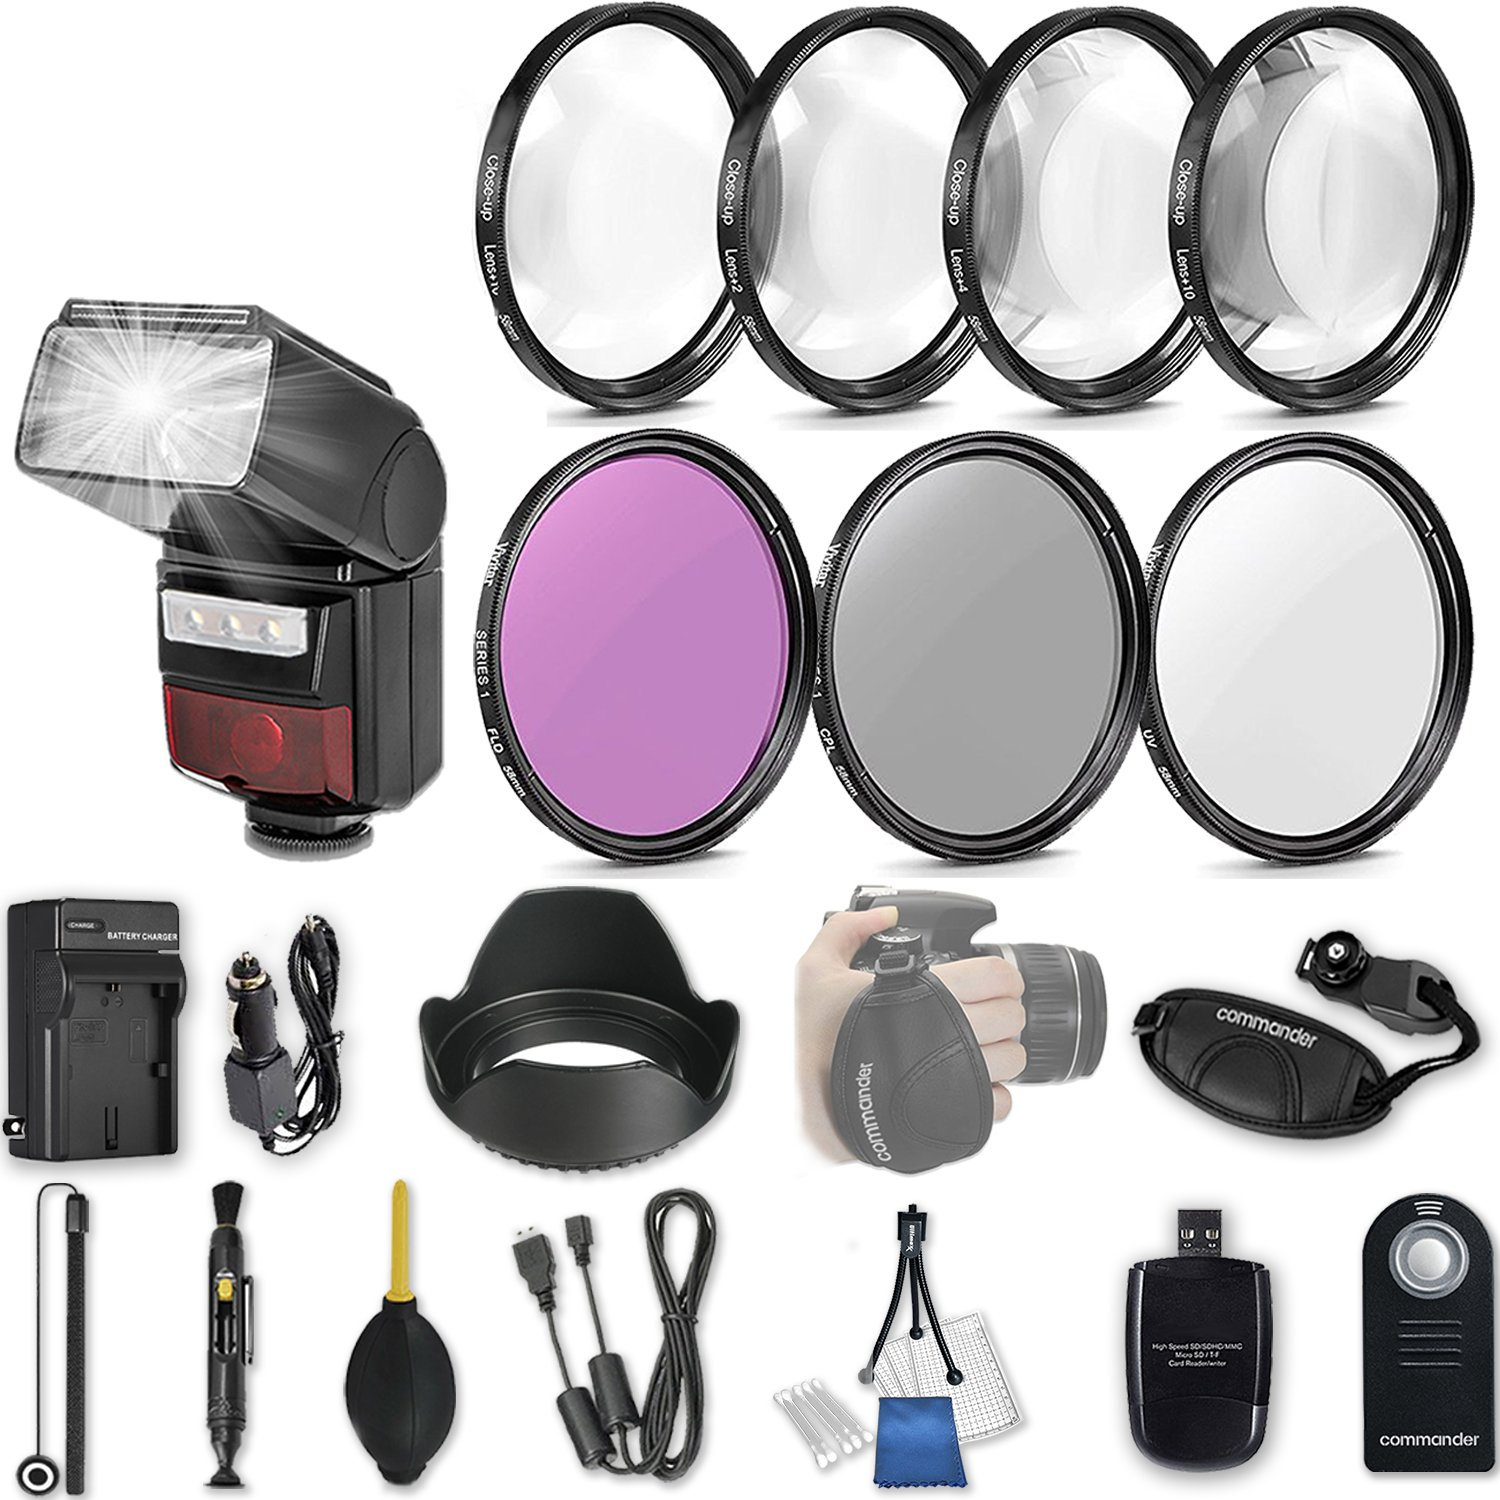 58mm 21 Pc Accessory Kit for Canon EOS T6i, T7i, 77D, T6s, 750D, 800D, 760D DSLRs with LED-Flash, UV CPL FLD Filters, & 4 Piece Macro Close-Up Set, and More by 33rd Street